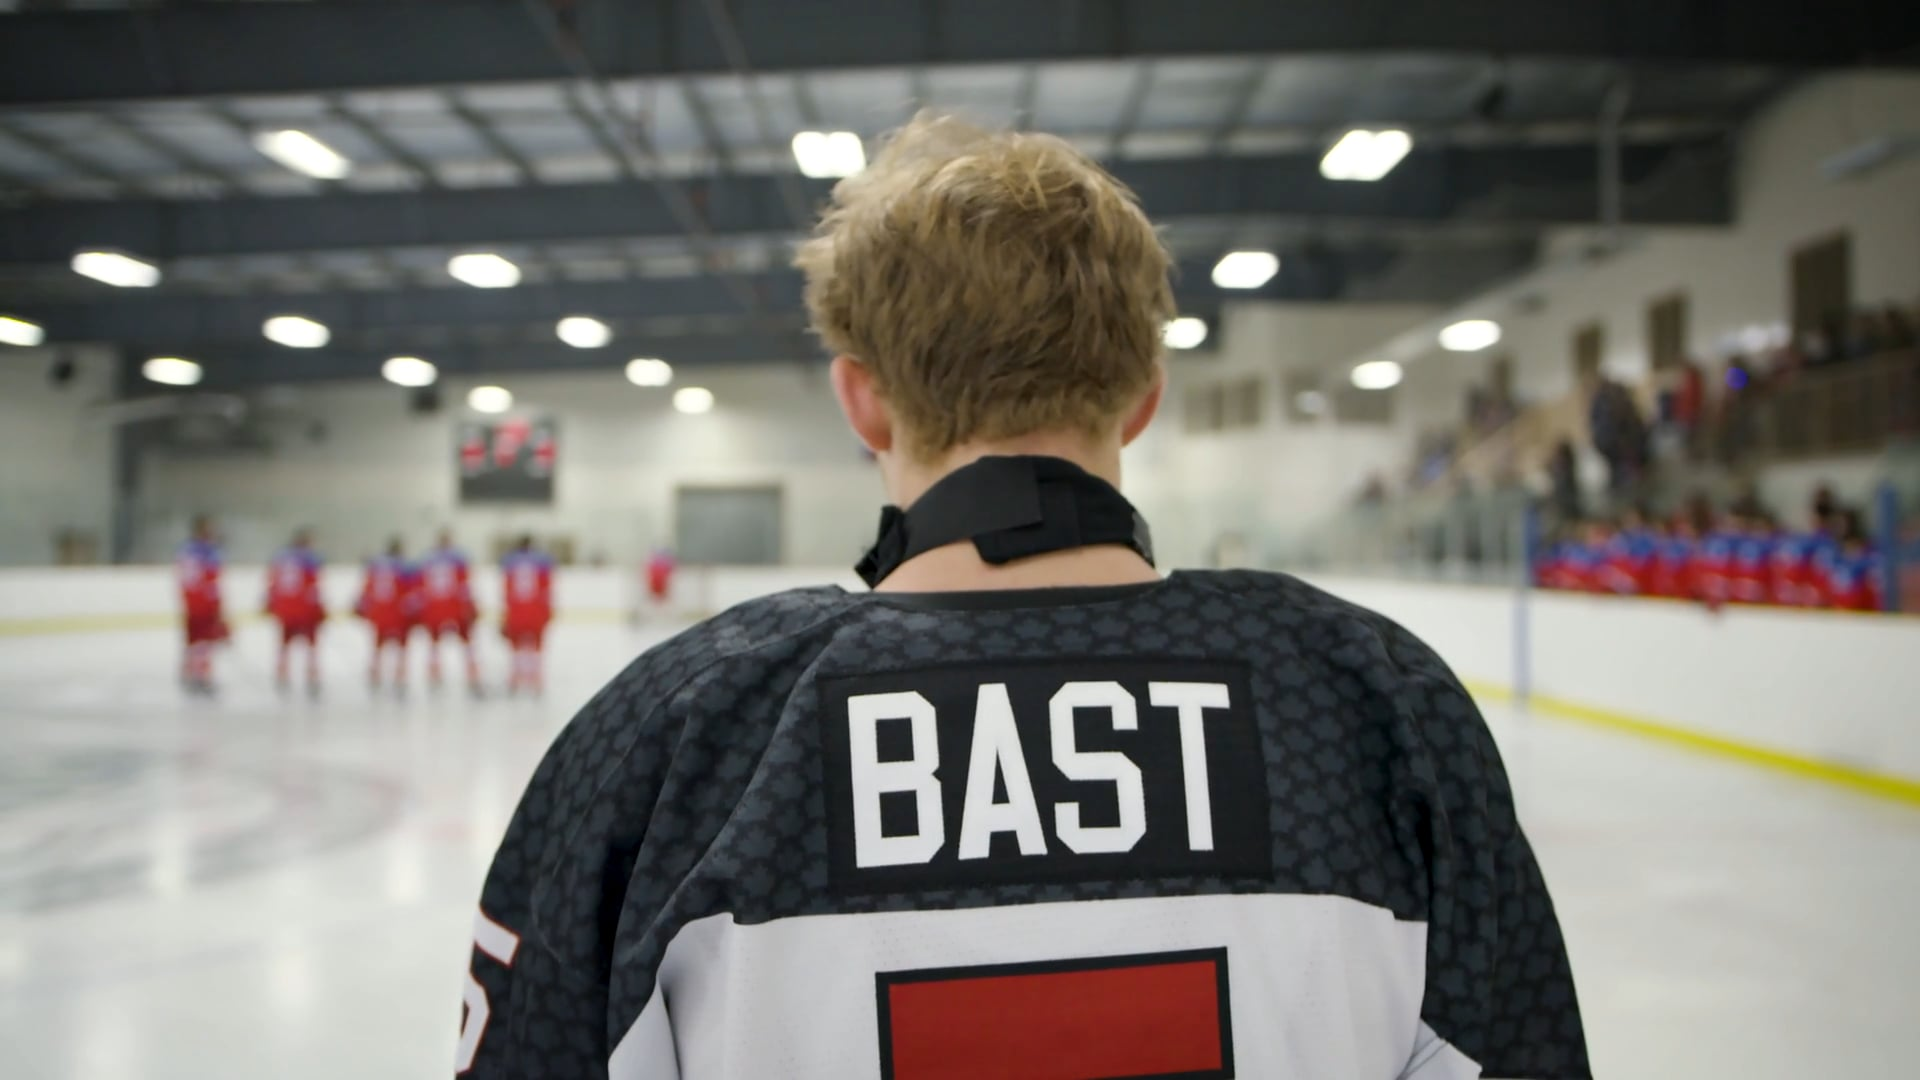 2018 World Junior A Challenge - Bast leans on sibling support